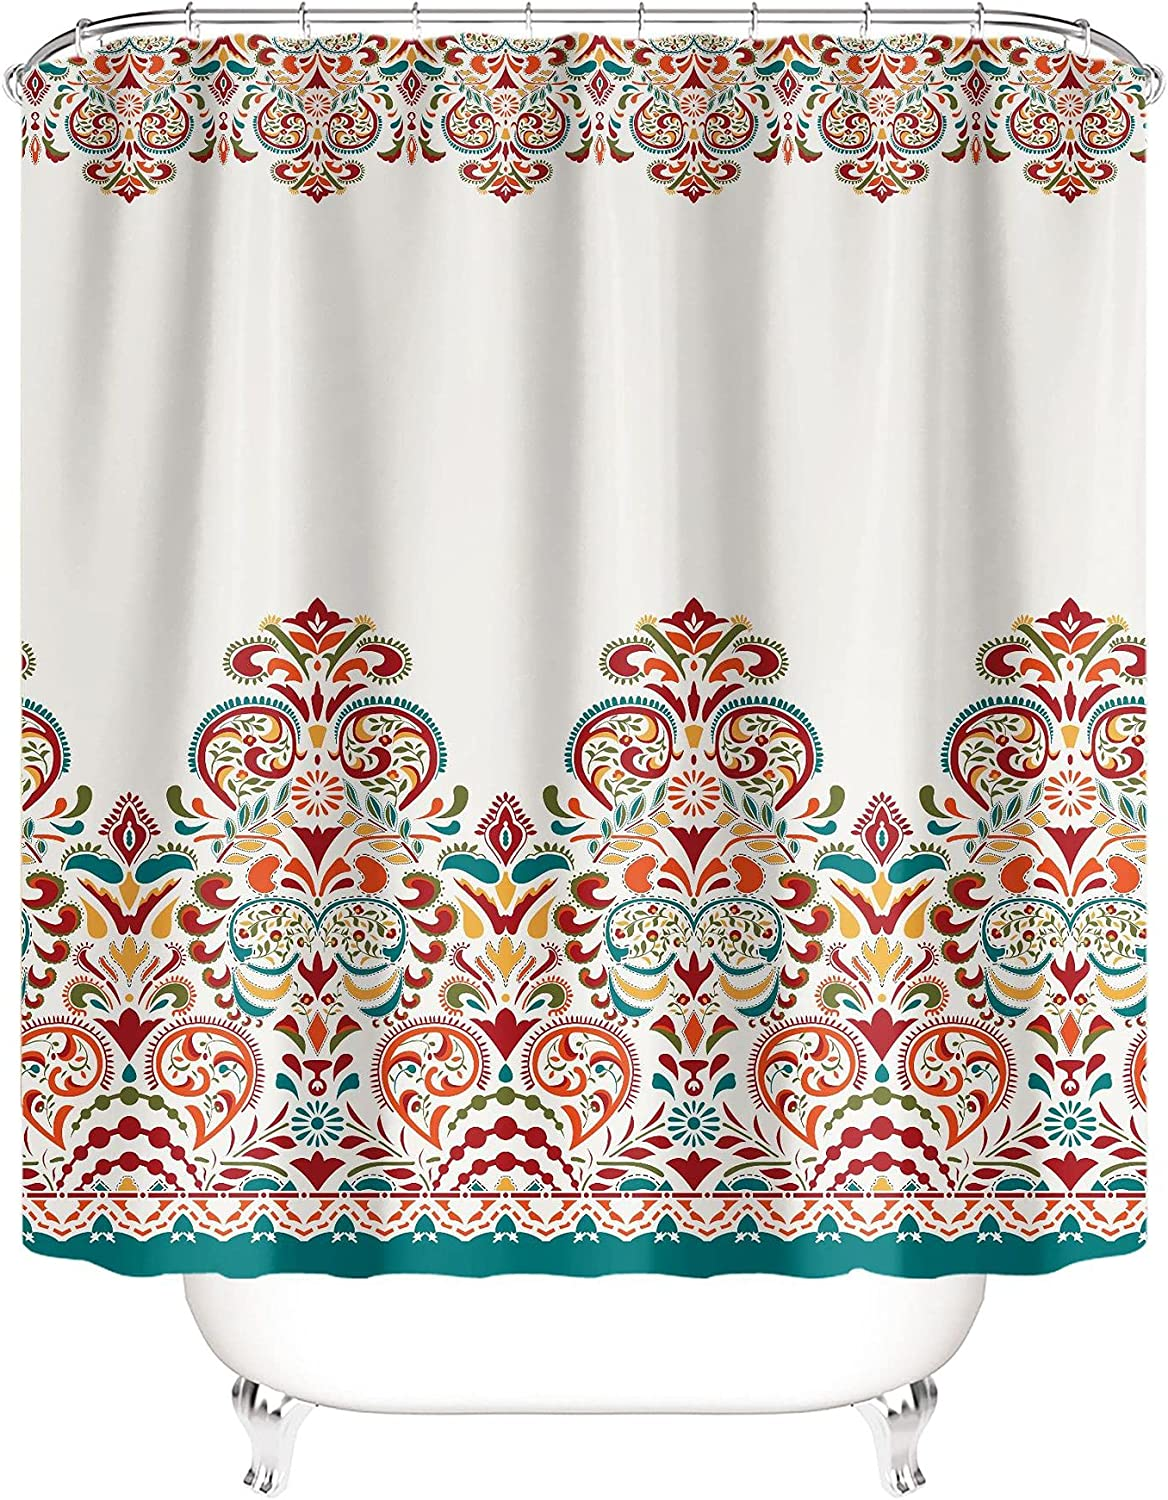 Boho Shower Curtain Bohemian Colorful 2021new shipping free shipping Large-scale sale Bathroom Design B for Bold